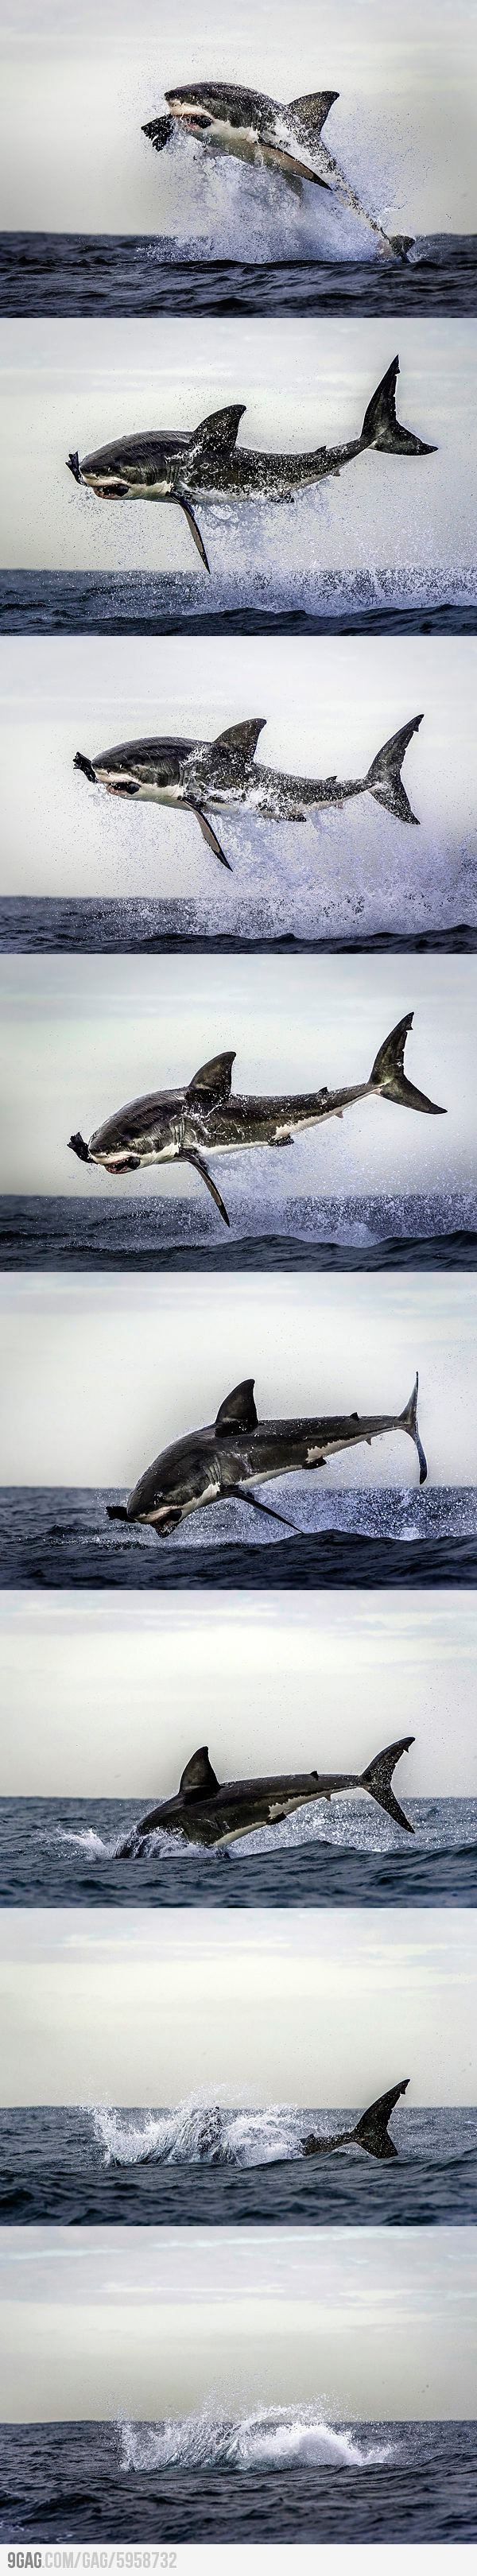 344 best Sharks images on Pinterest